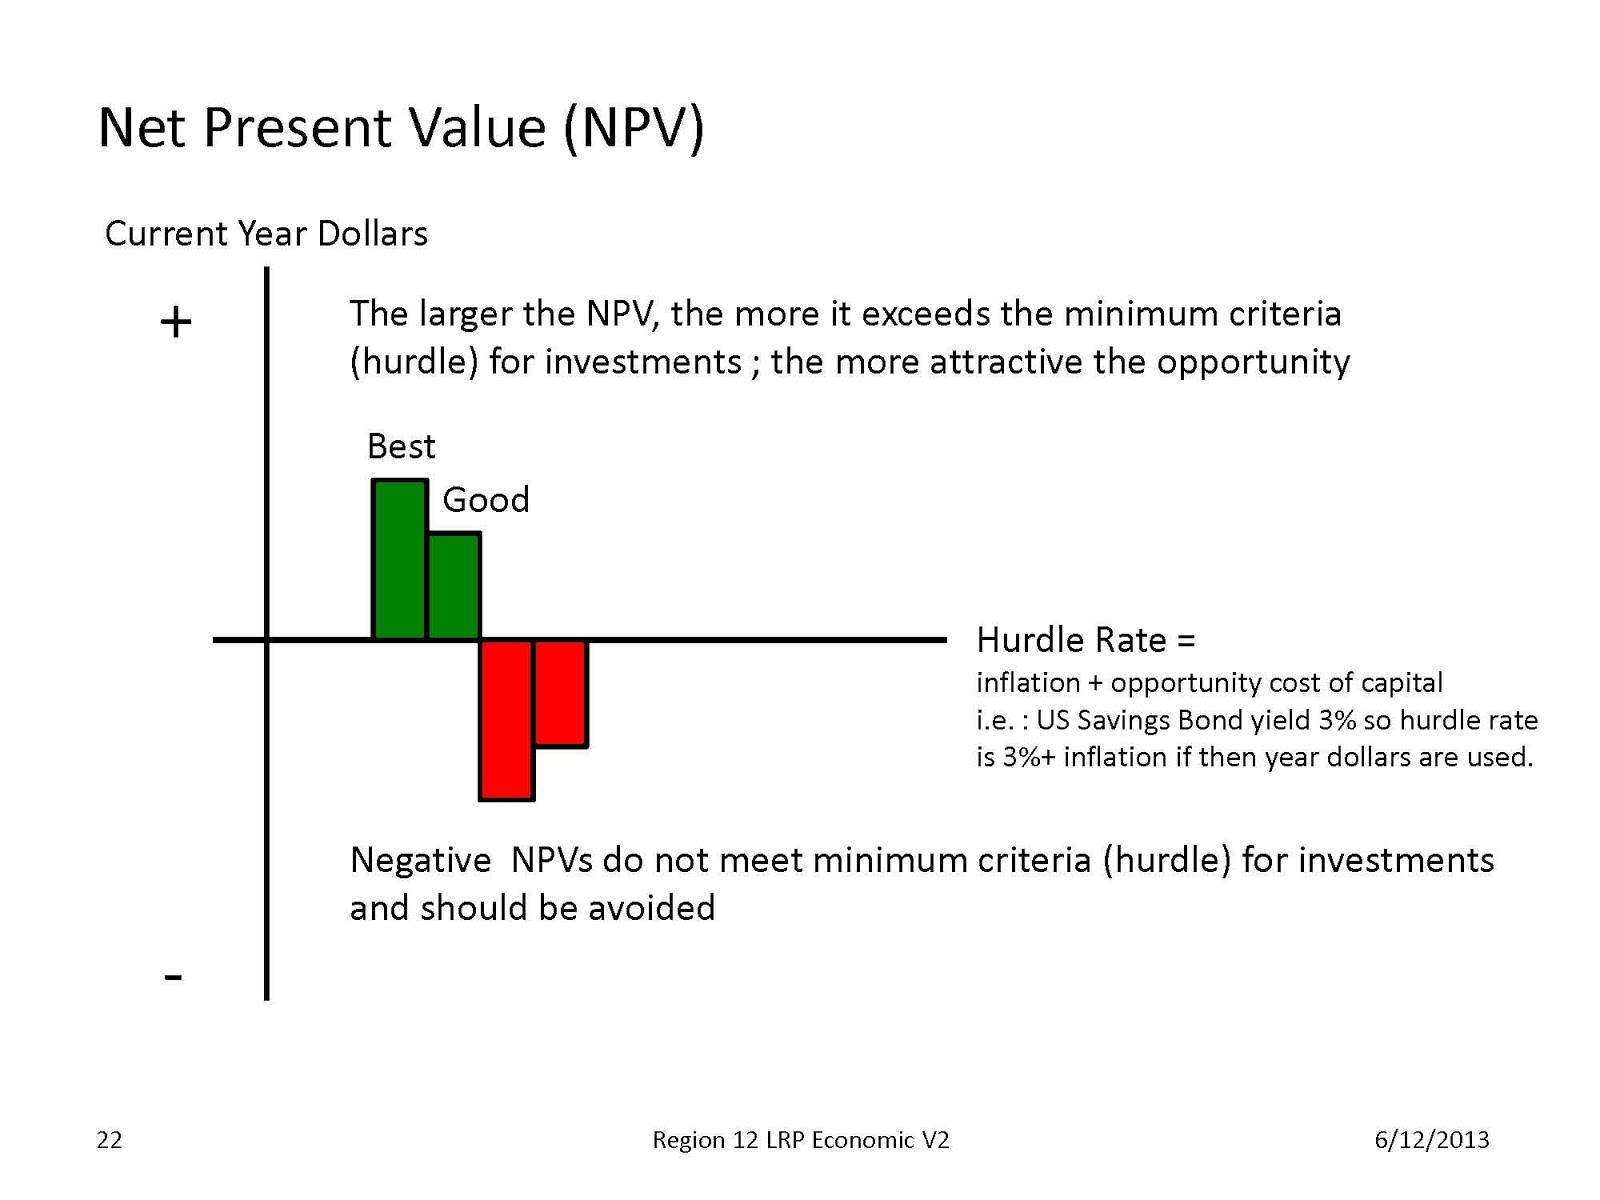 net present value and hurdle rate Net present value and payback b internal rate of return and payback c net present value and average accounting return d internal rate of return and net present value e payback and average accounting return the length of time a firm must wait to recoup, in present value terms, the money it has in.